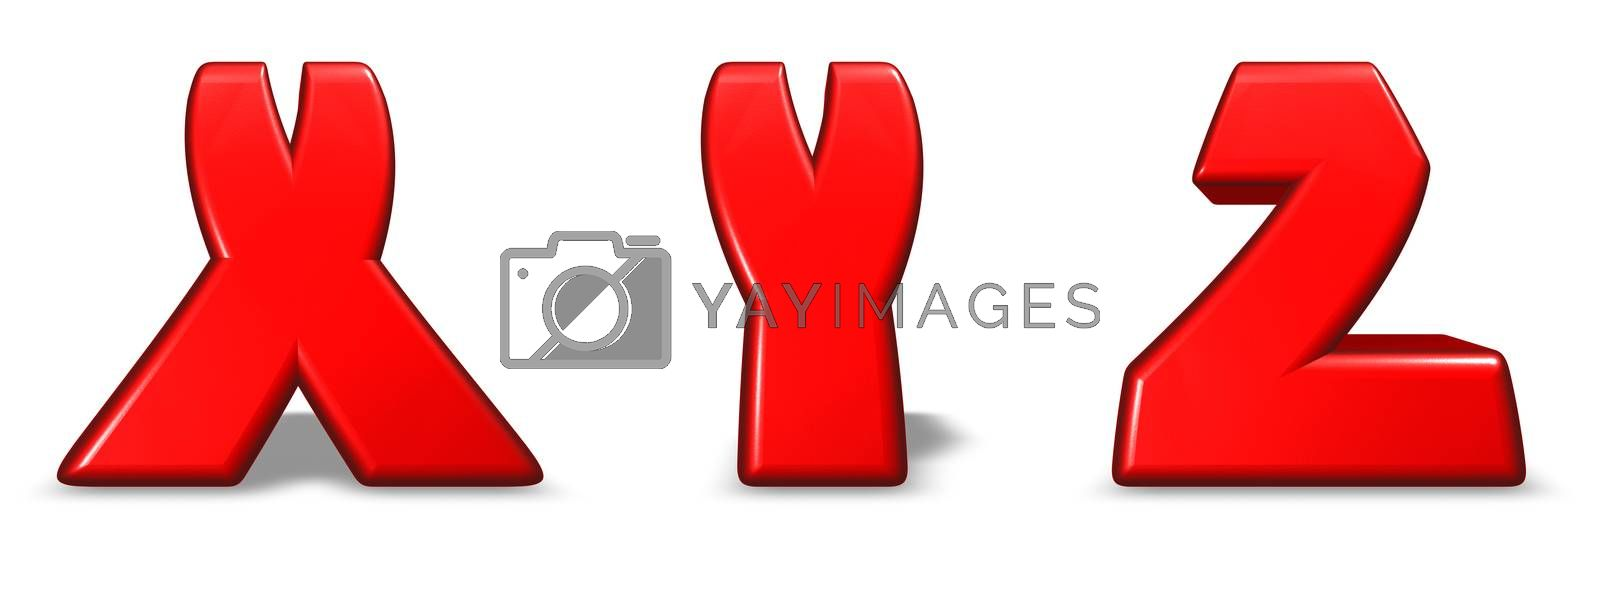 red  letters x, y and z on white background - 3d illustration